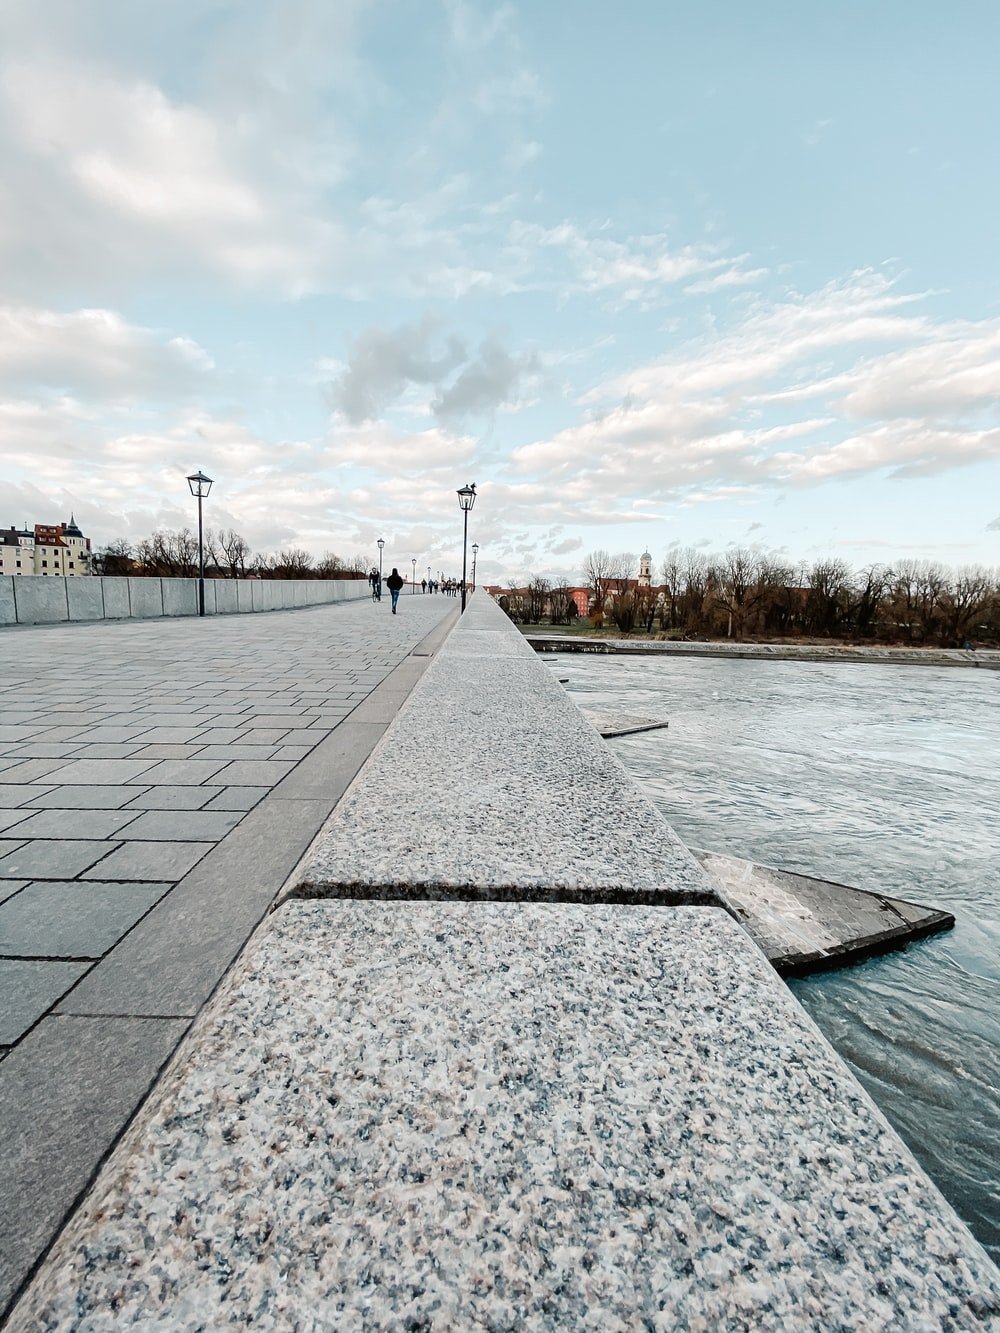 people walking on gray concrete pathway near body of water during daytime